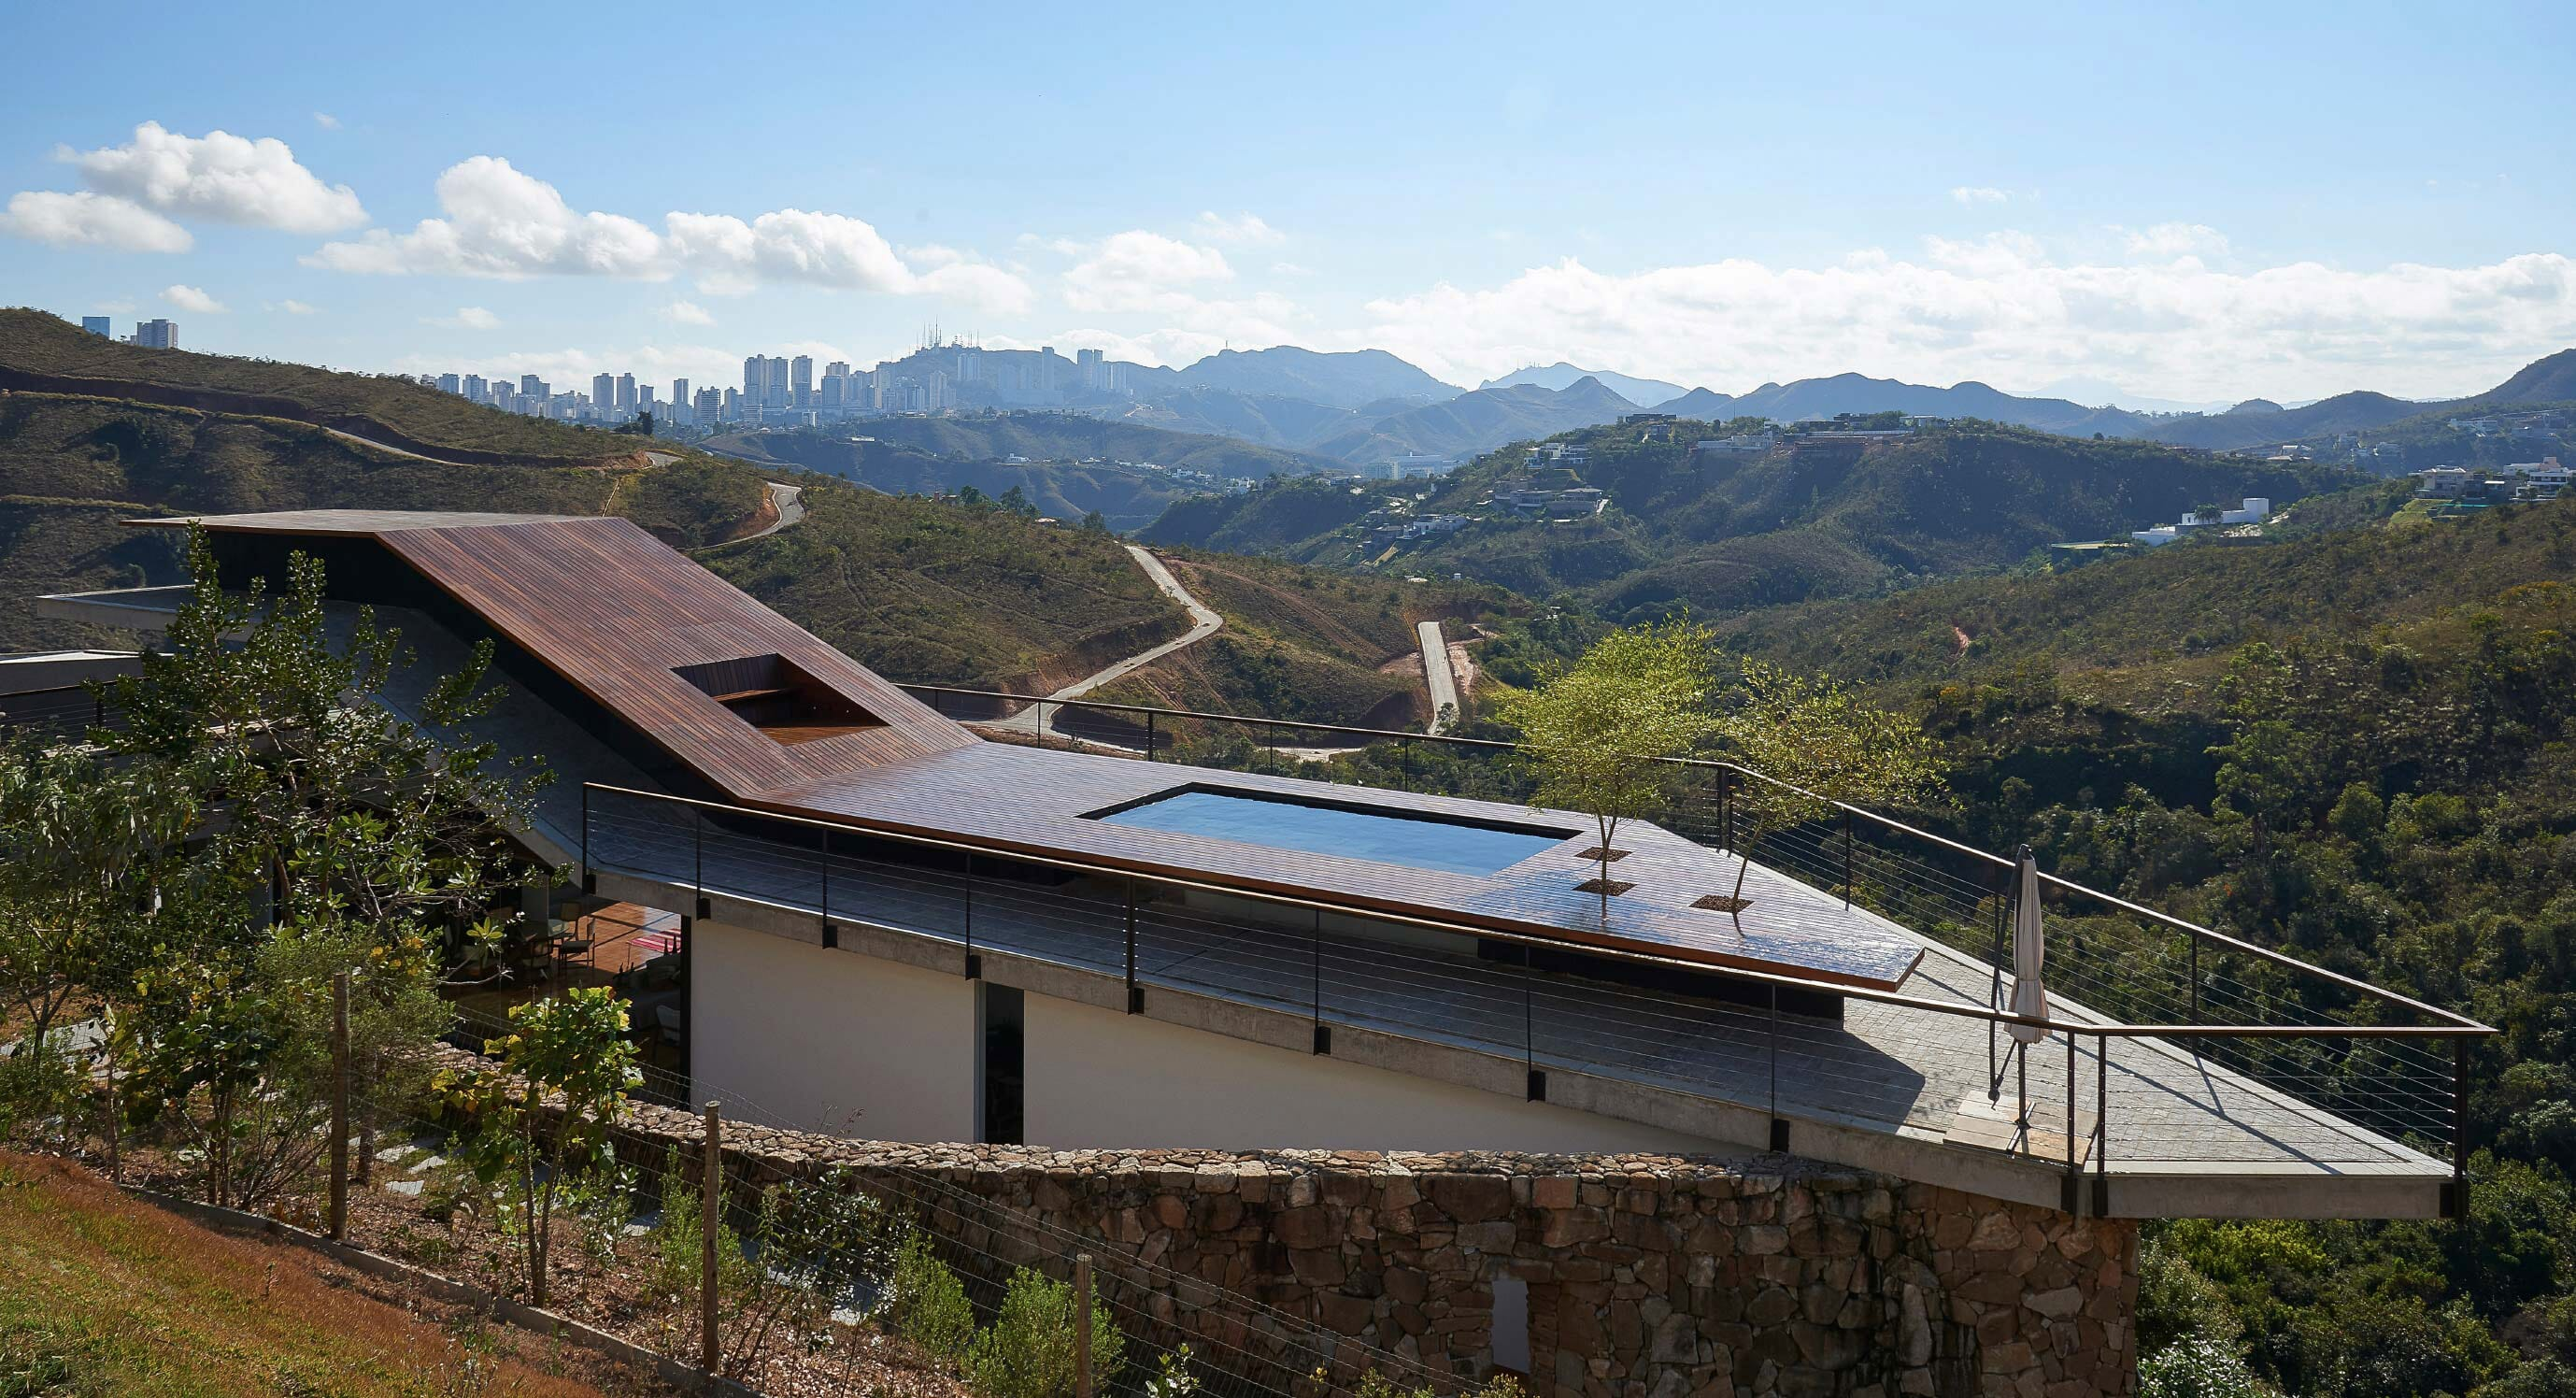 All About The View: The Inclined Steep House, Brazil